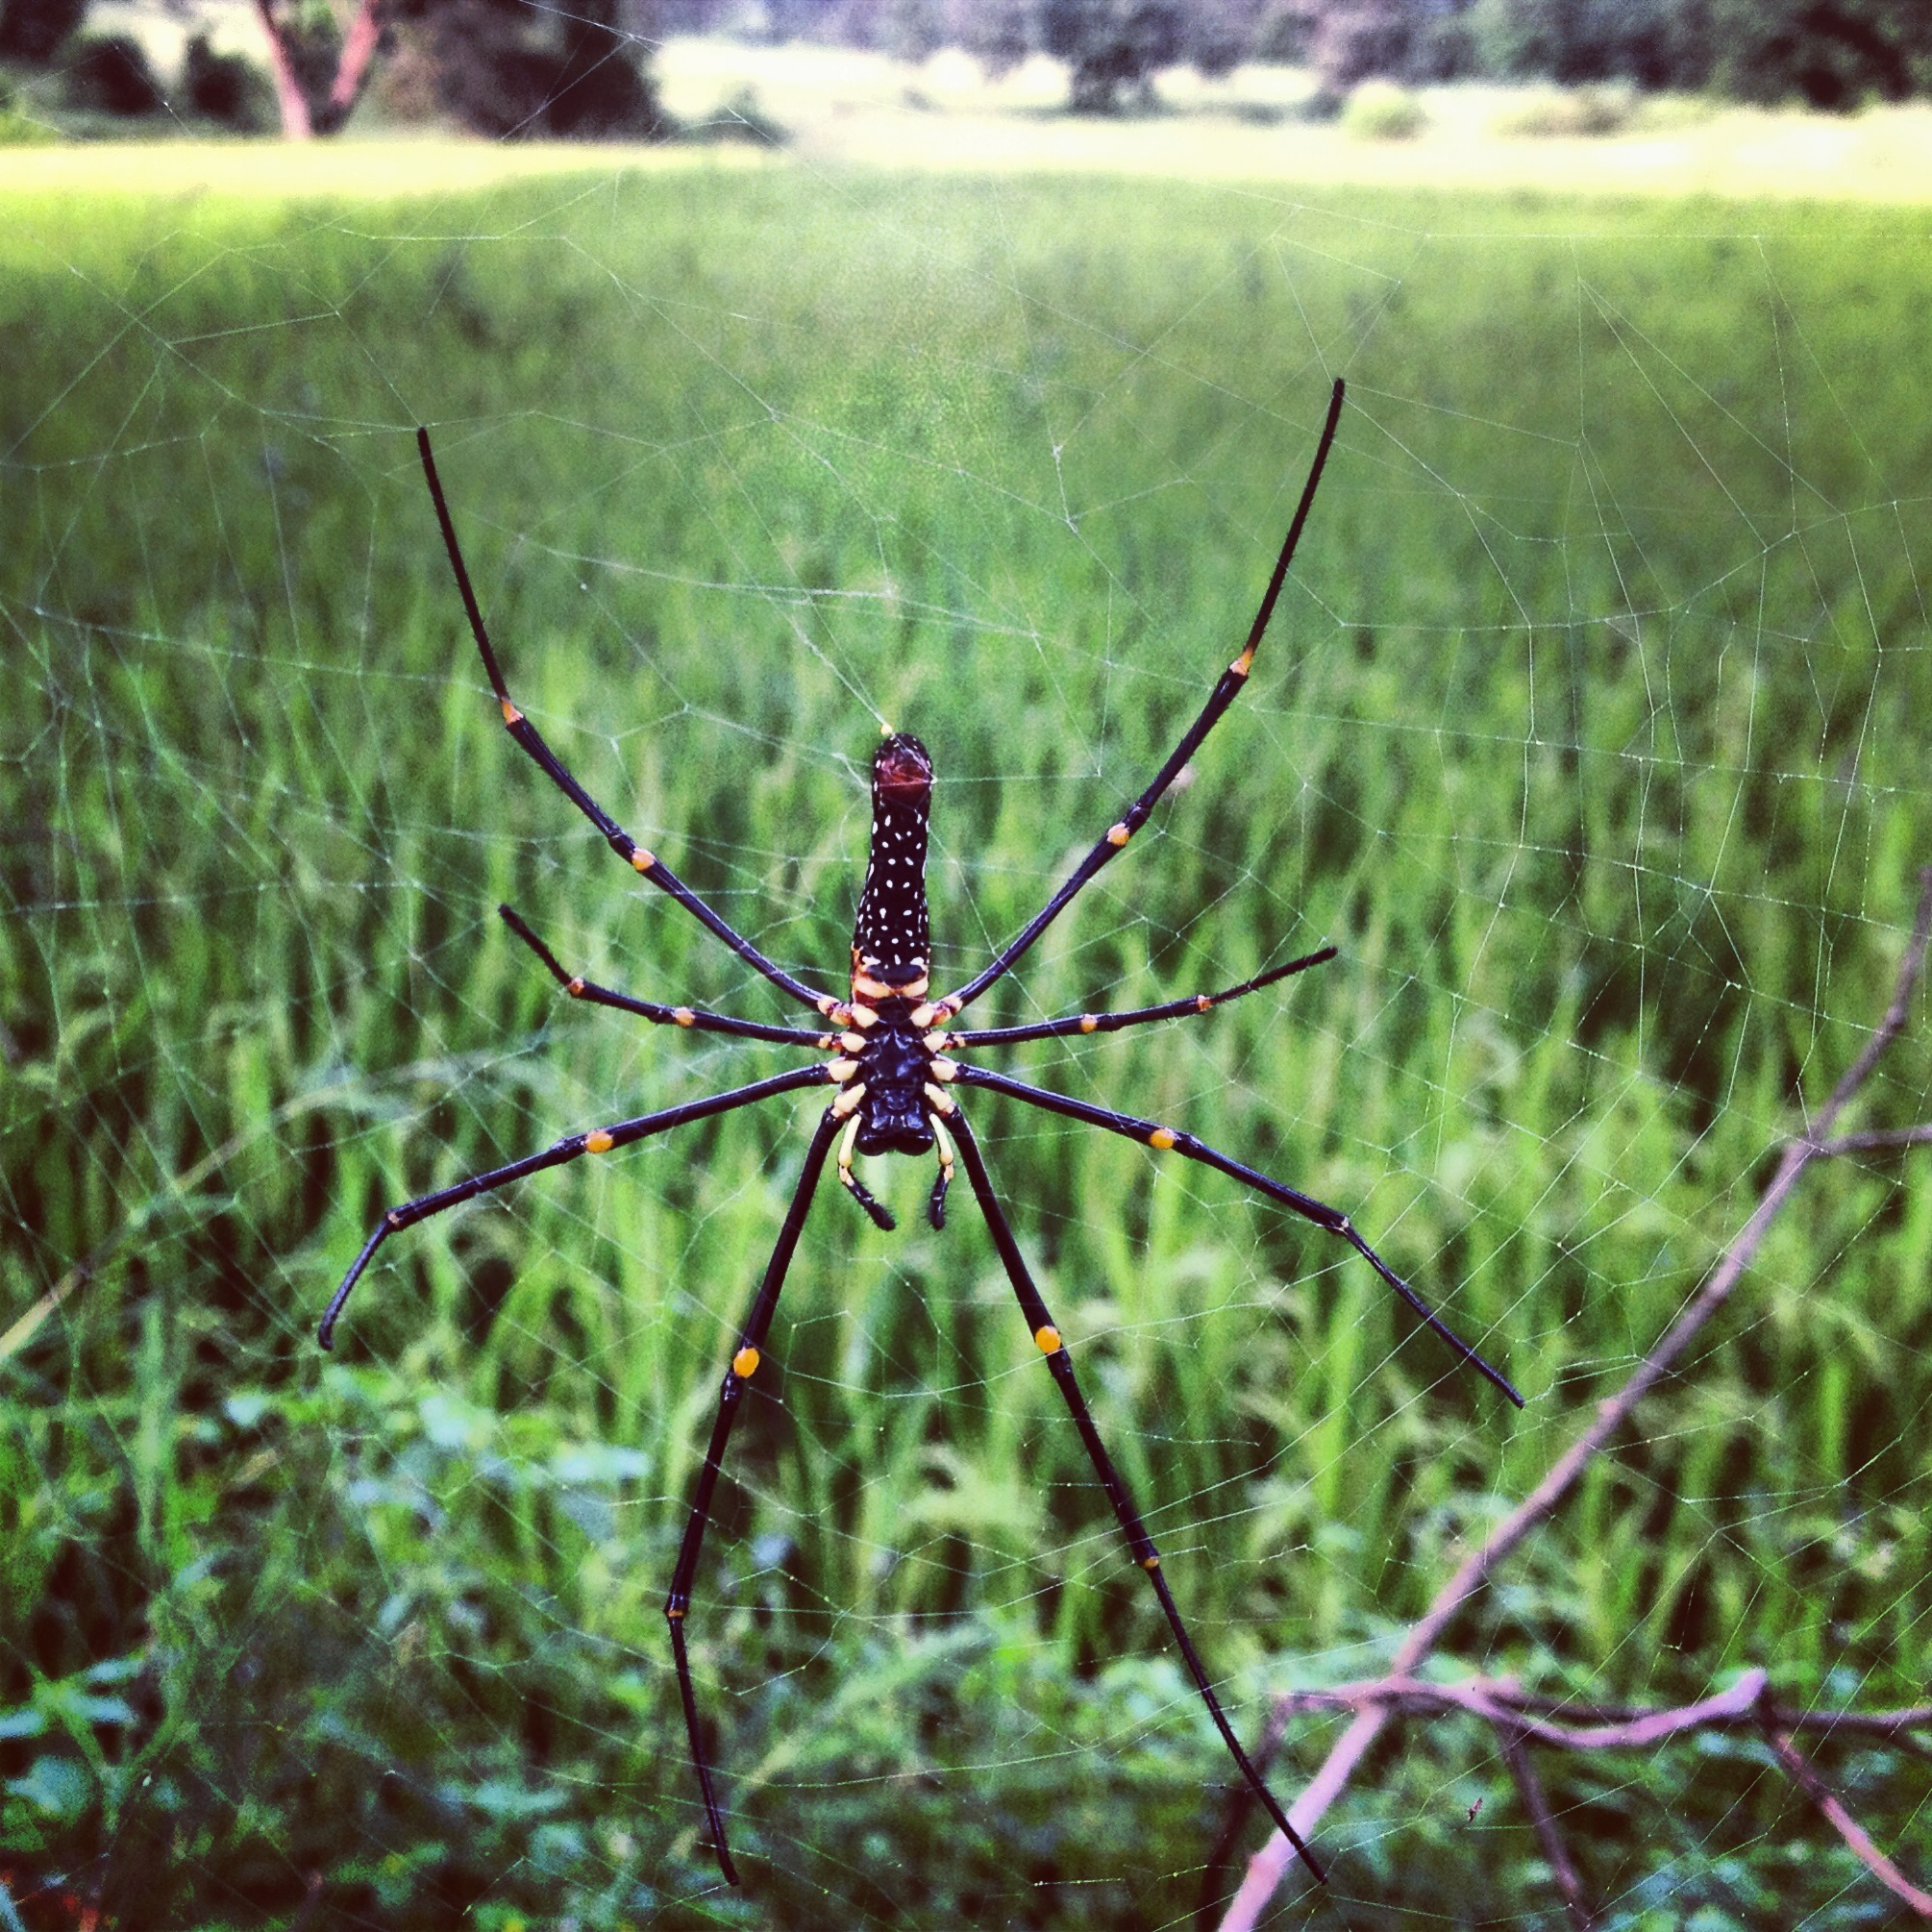 Giant Wood Spider.  Photograph by Katie Bhujwala.